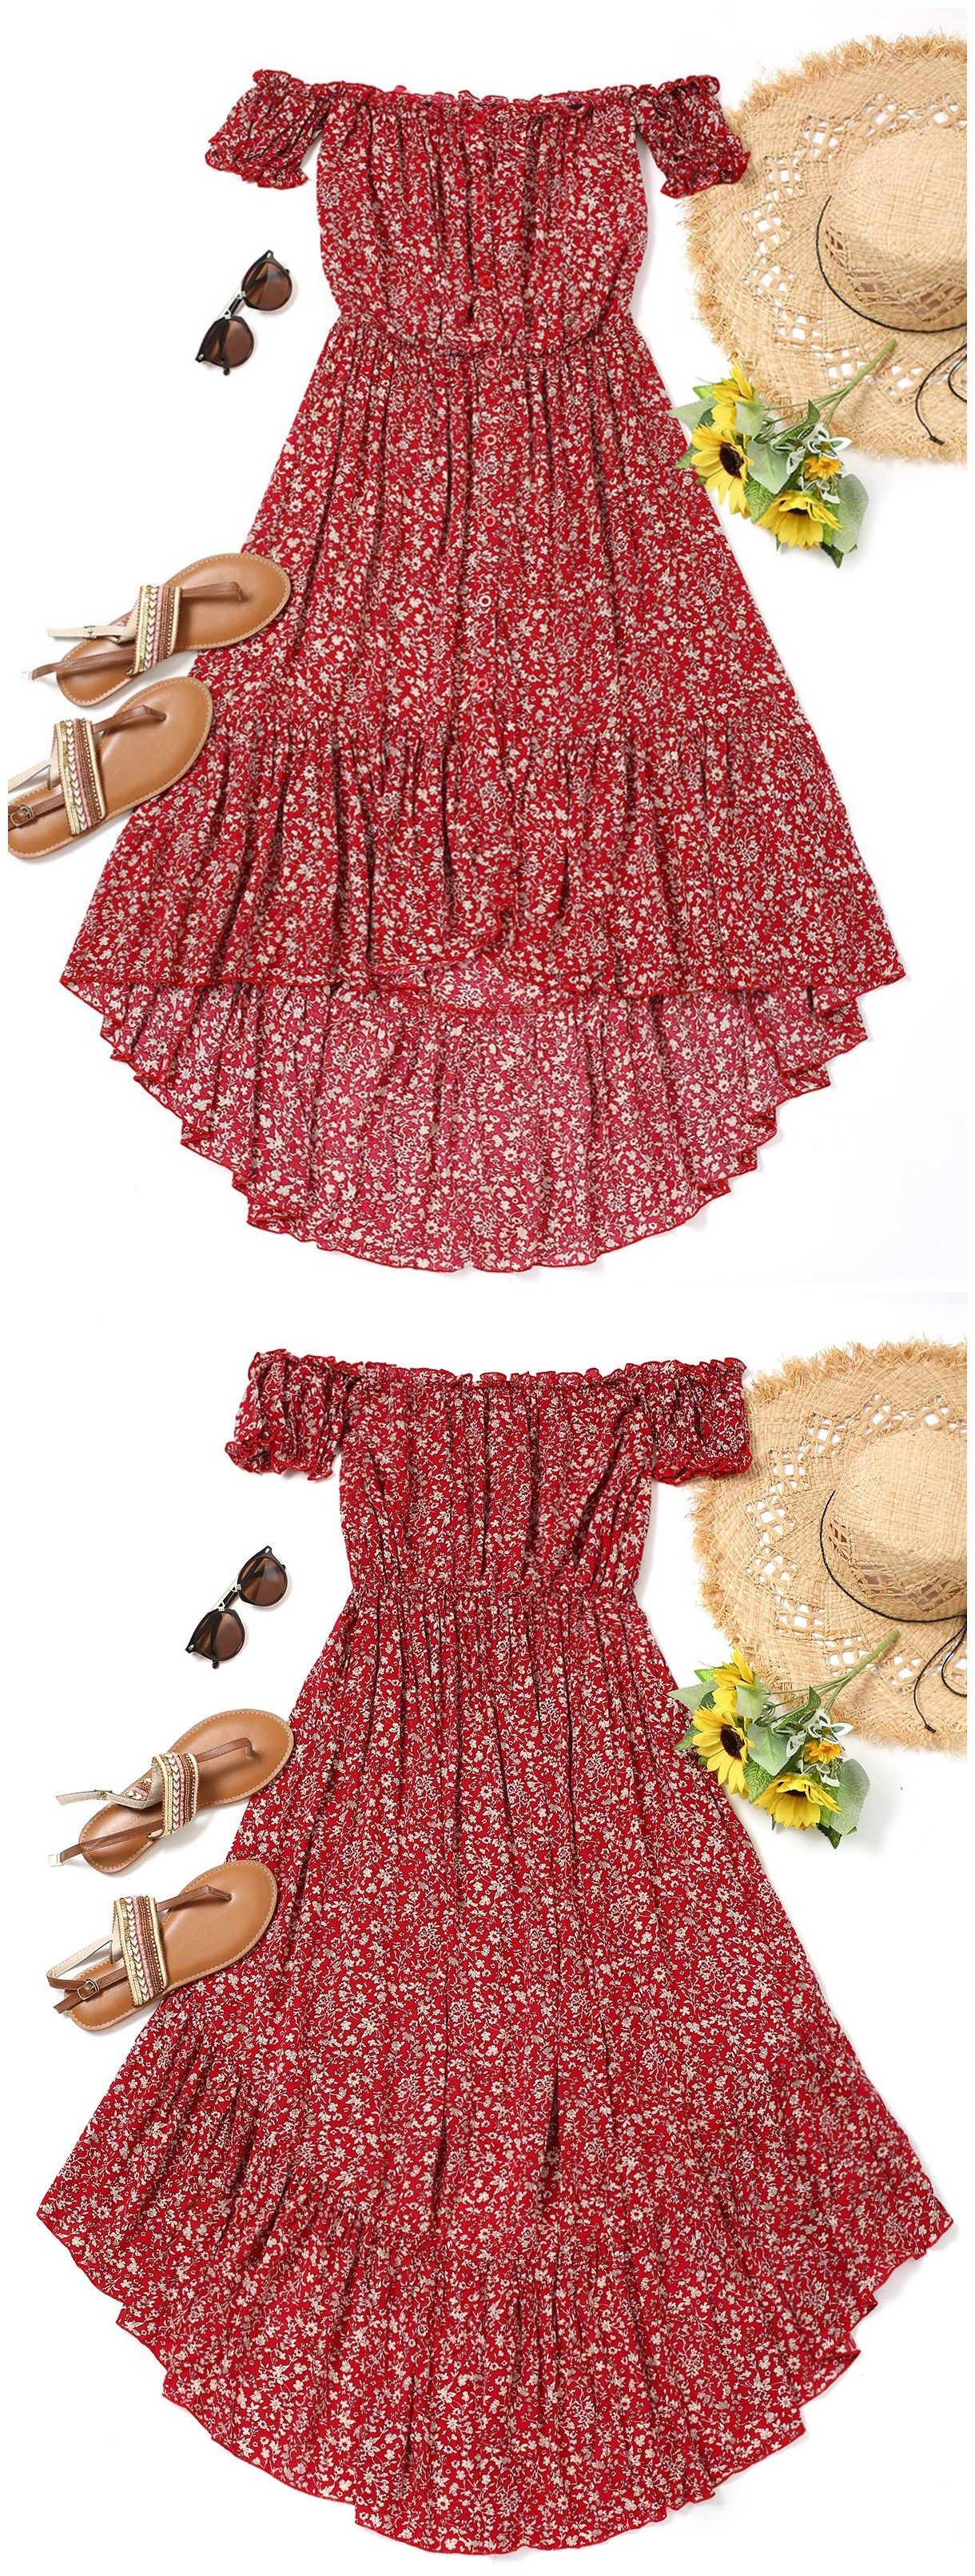 Up to 80% OFF! Tiny Floral High Low Dress. #Zaful #Dress Zaful,zaful outfits,zaful dresses,spring outfits,summer dresses,Valentine's Day,valentines day ideas,valentines outfits,cute,casual,classy,fashion,style,dress,long dress,maxi dress,mini dress,long sleeve dress,flounced dress,vintage dress,casual dress,lace dress,boho dress, flower dresses,maxi dresses,evening dresses,floral dresses,long dress,party dress,bohemian dresses,floral dress @zaful Extra 10% OFF Code:ZF2017